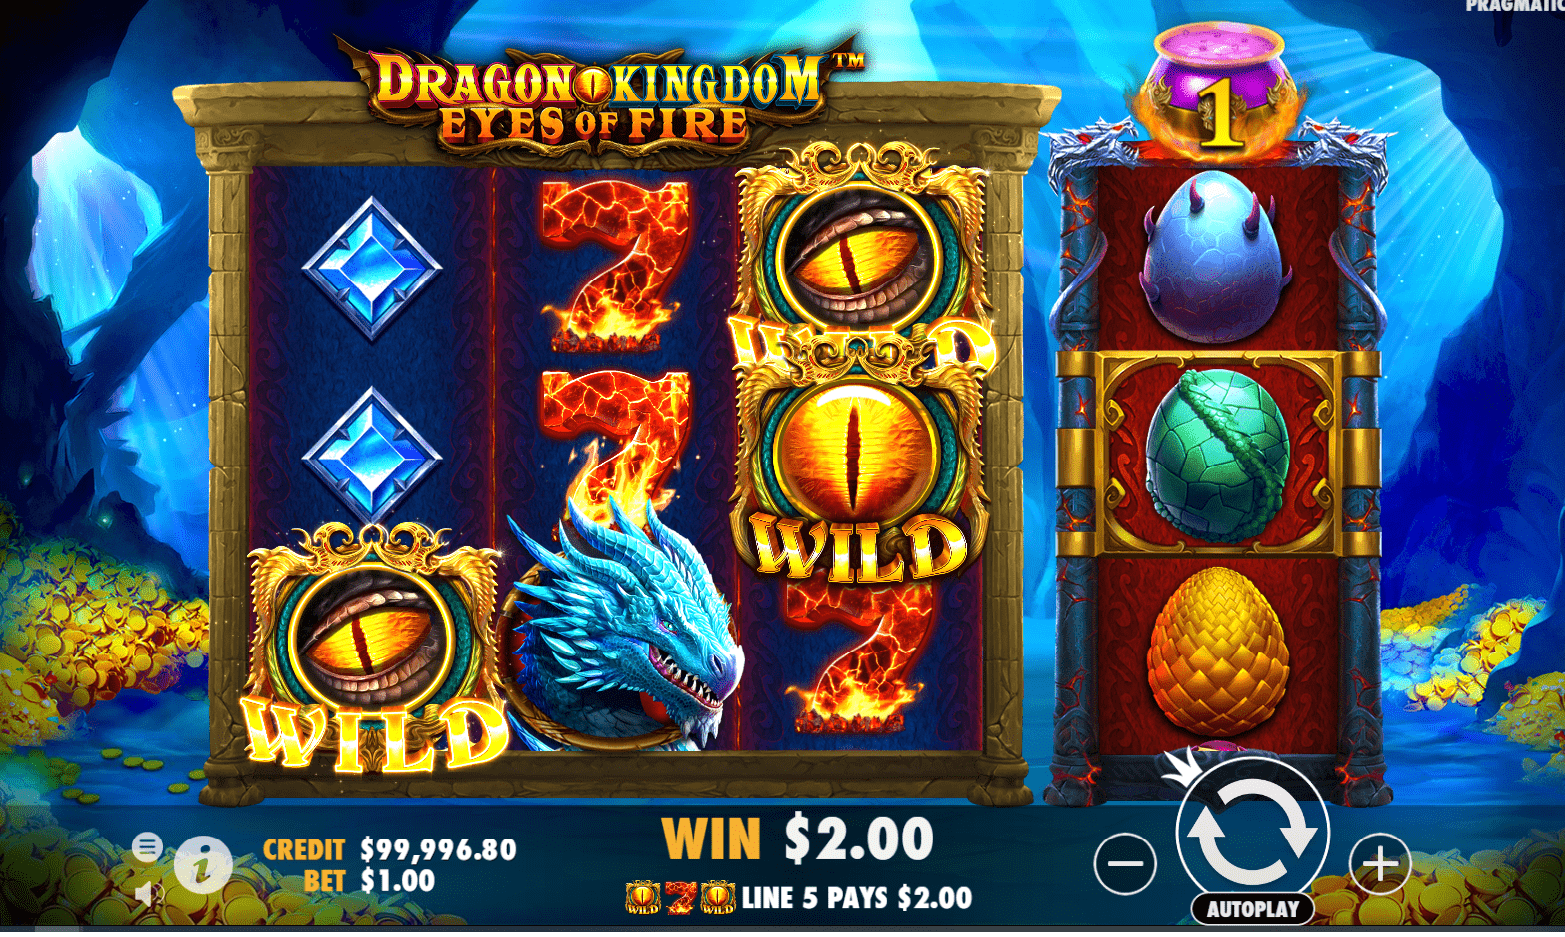 Dragon Kingdom Eyes Of Fire Video Slot Wilds